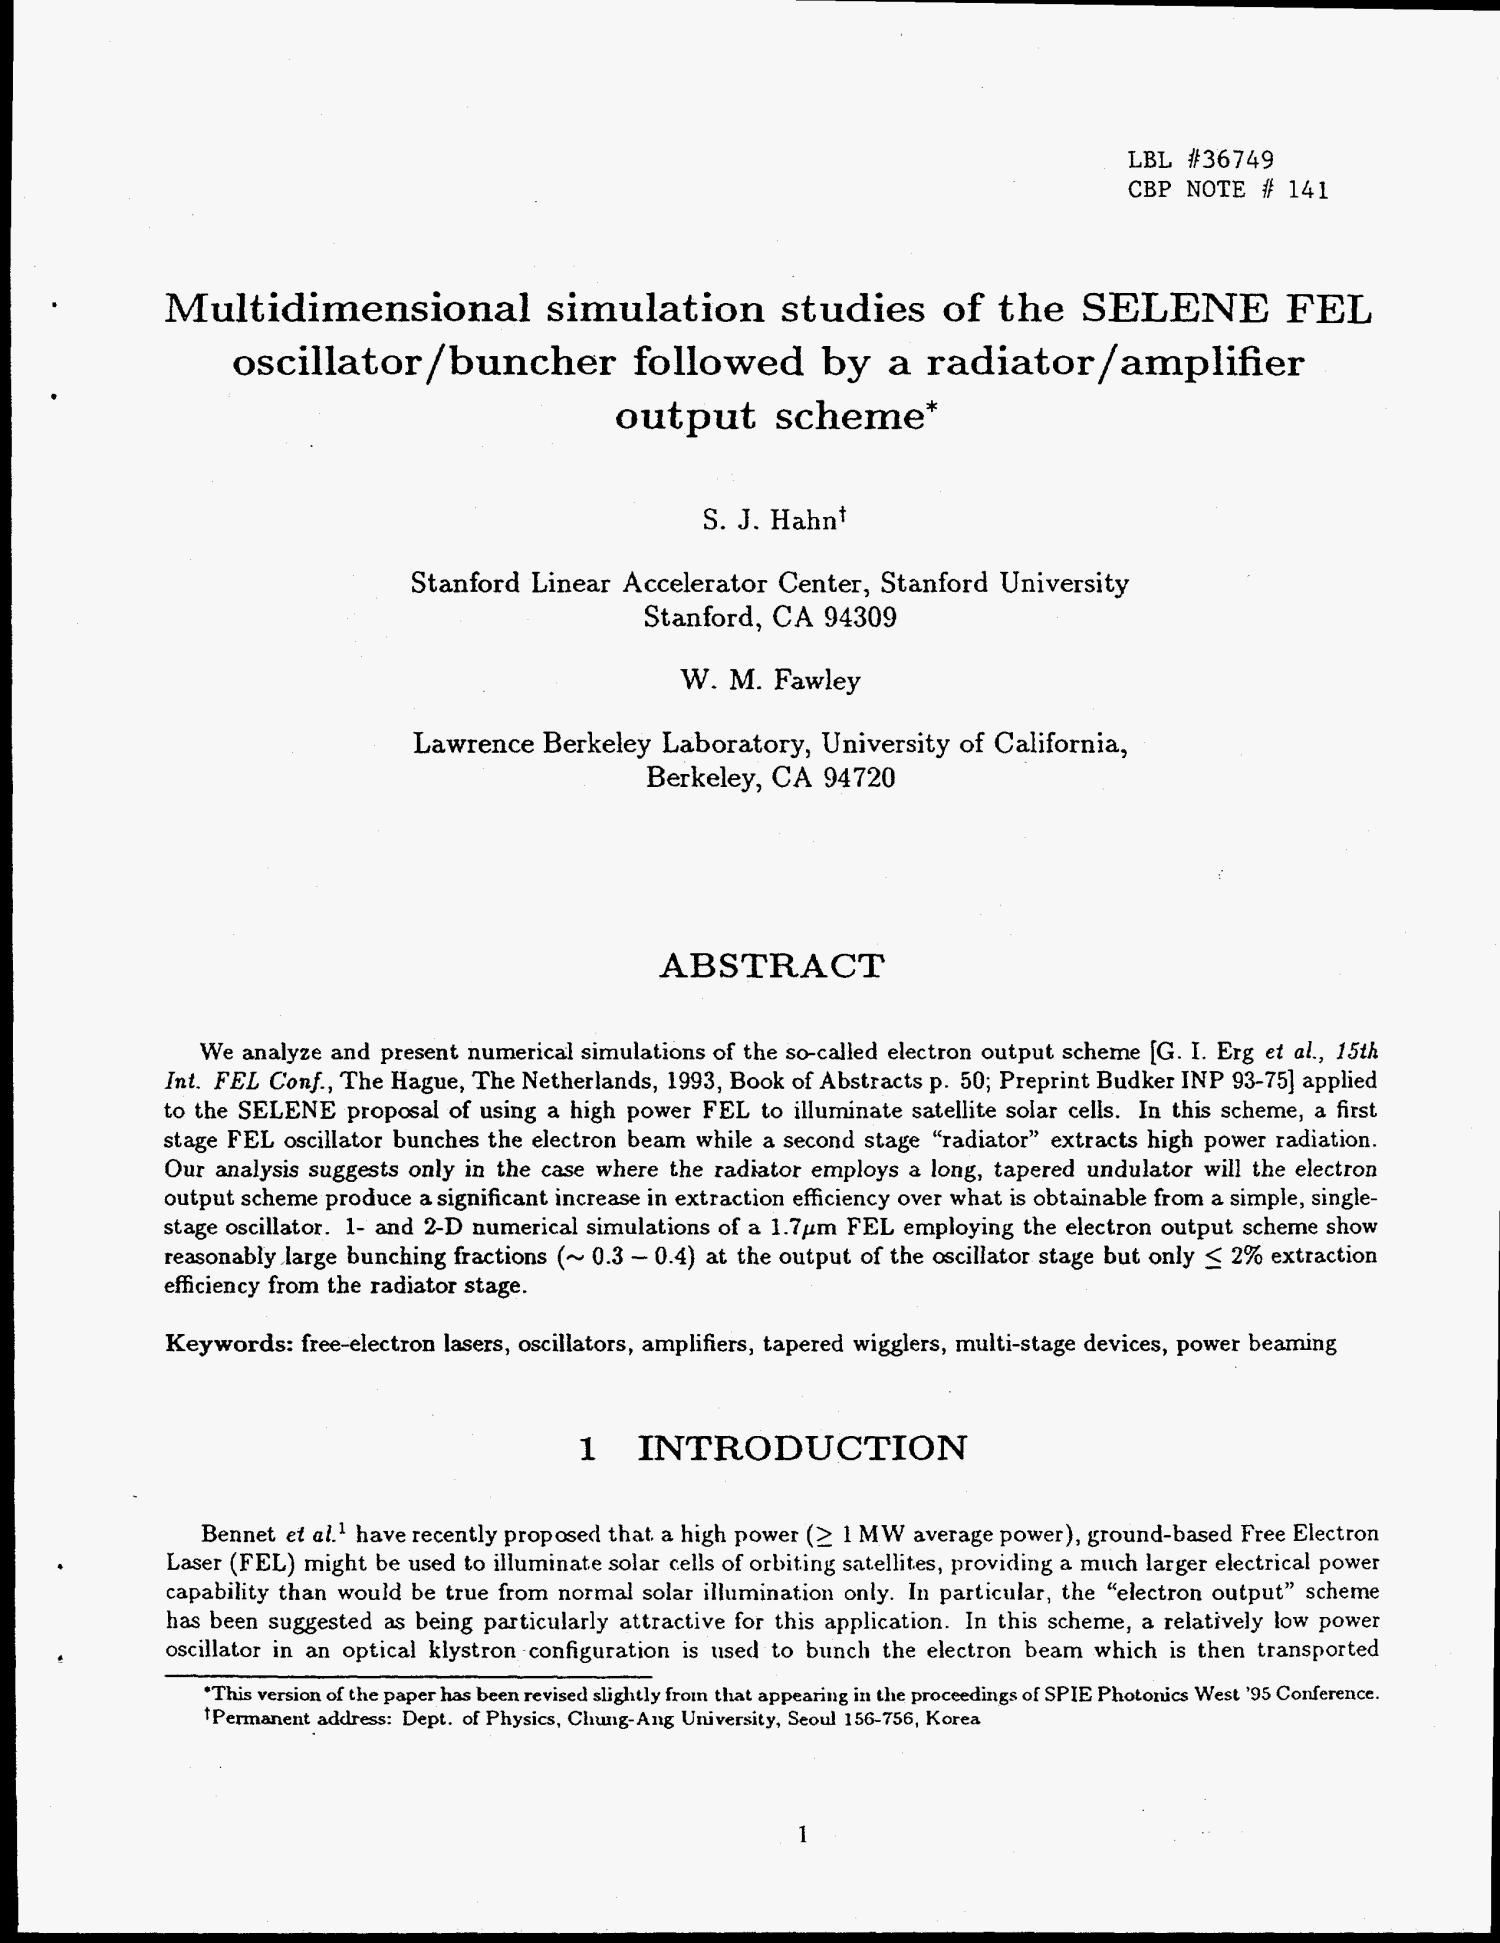 Multidimensional simulation studies of the SELENE FEL oscillator/buncher followed by a radiator/amplifier output scheme                                                                                                      [Sequence #]: 4 of 12